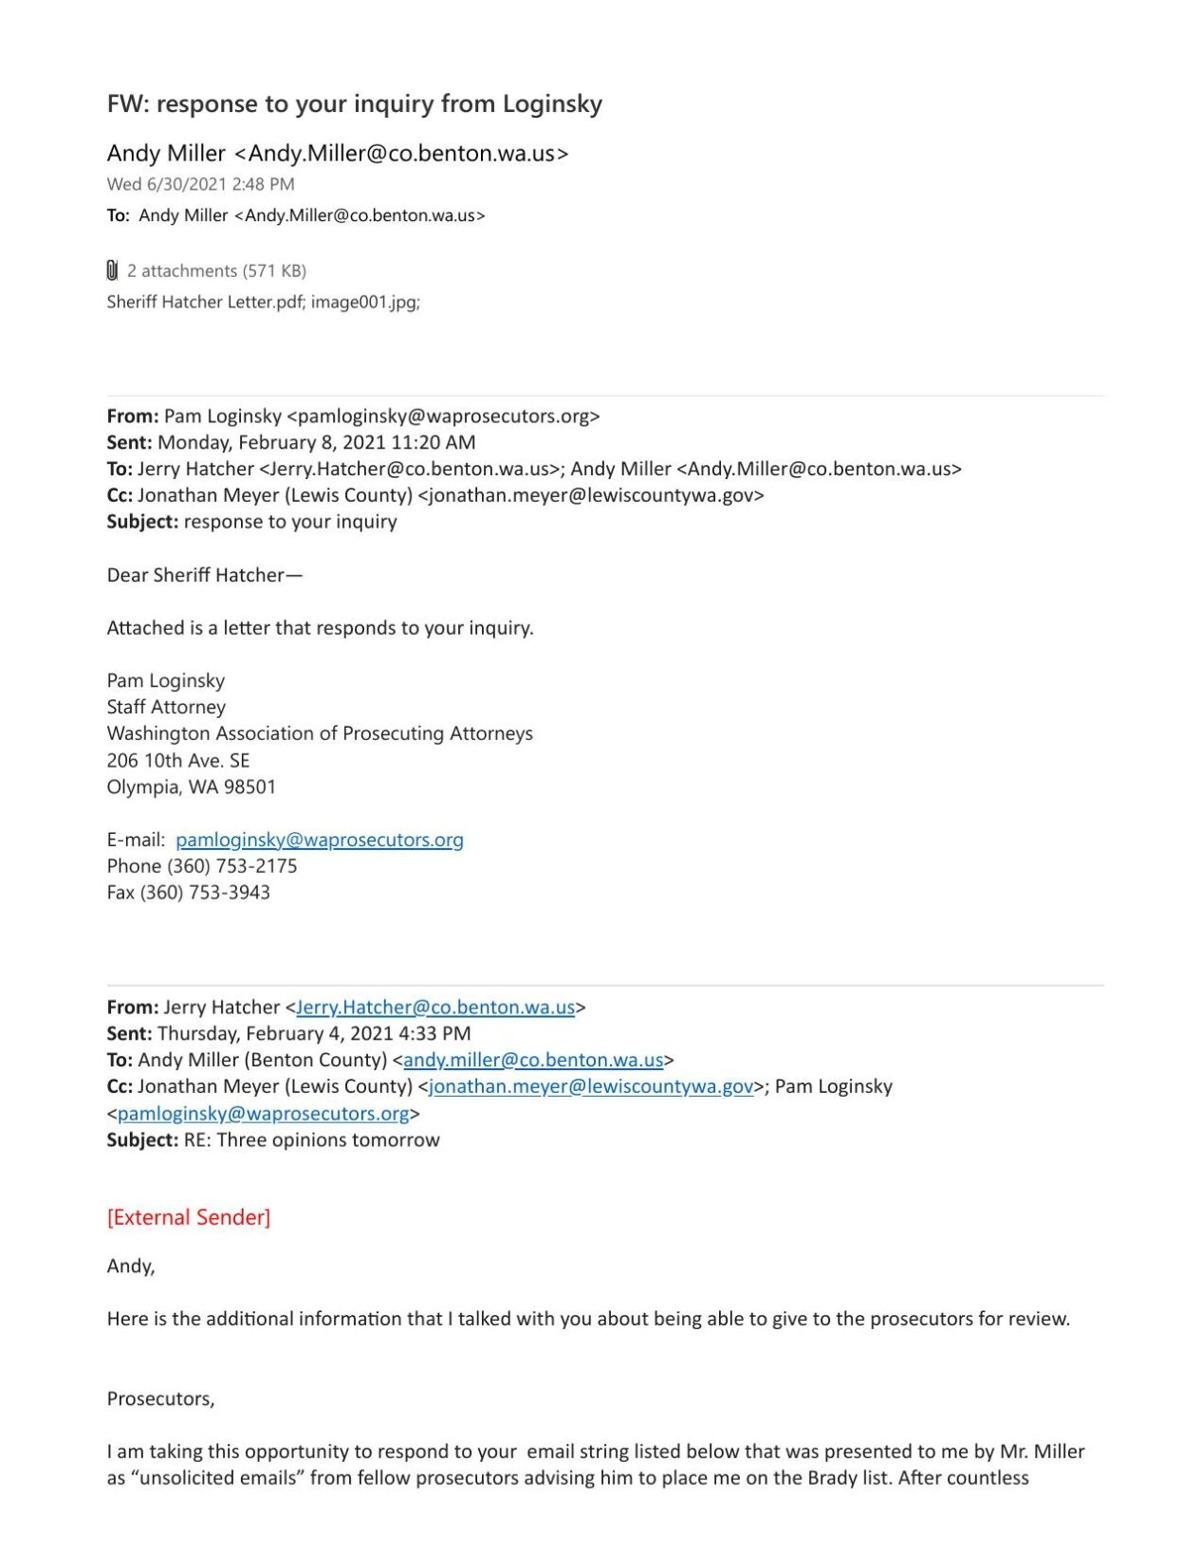 Email tread from Andy Miller - response from Loginsky